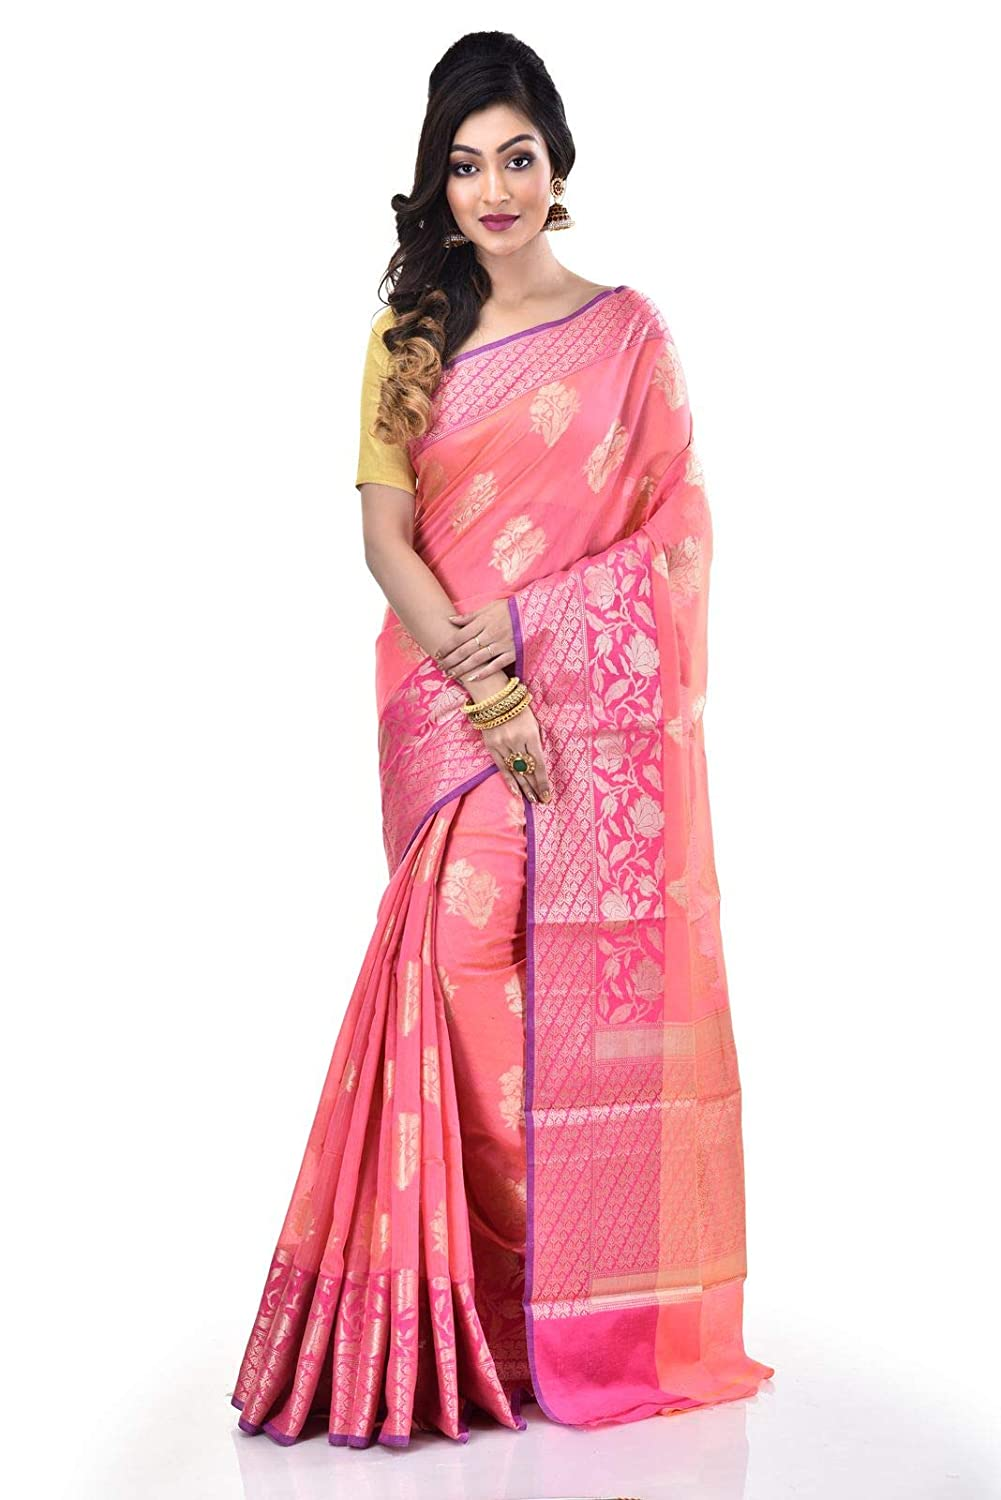 Mercerize Chanderi Banarasi Saree